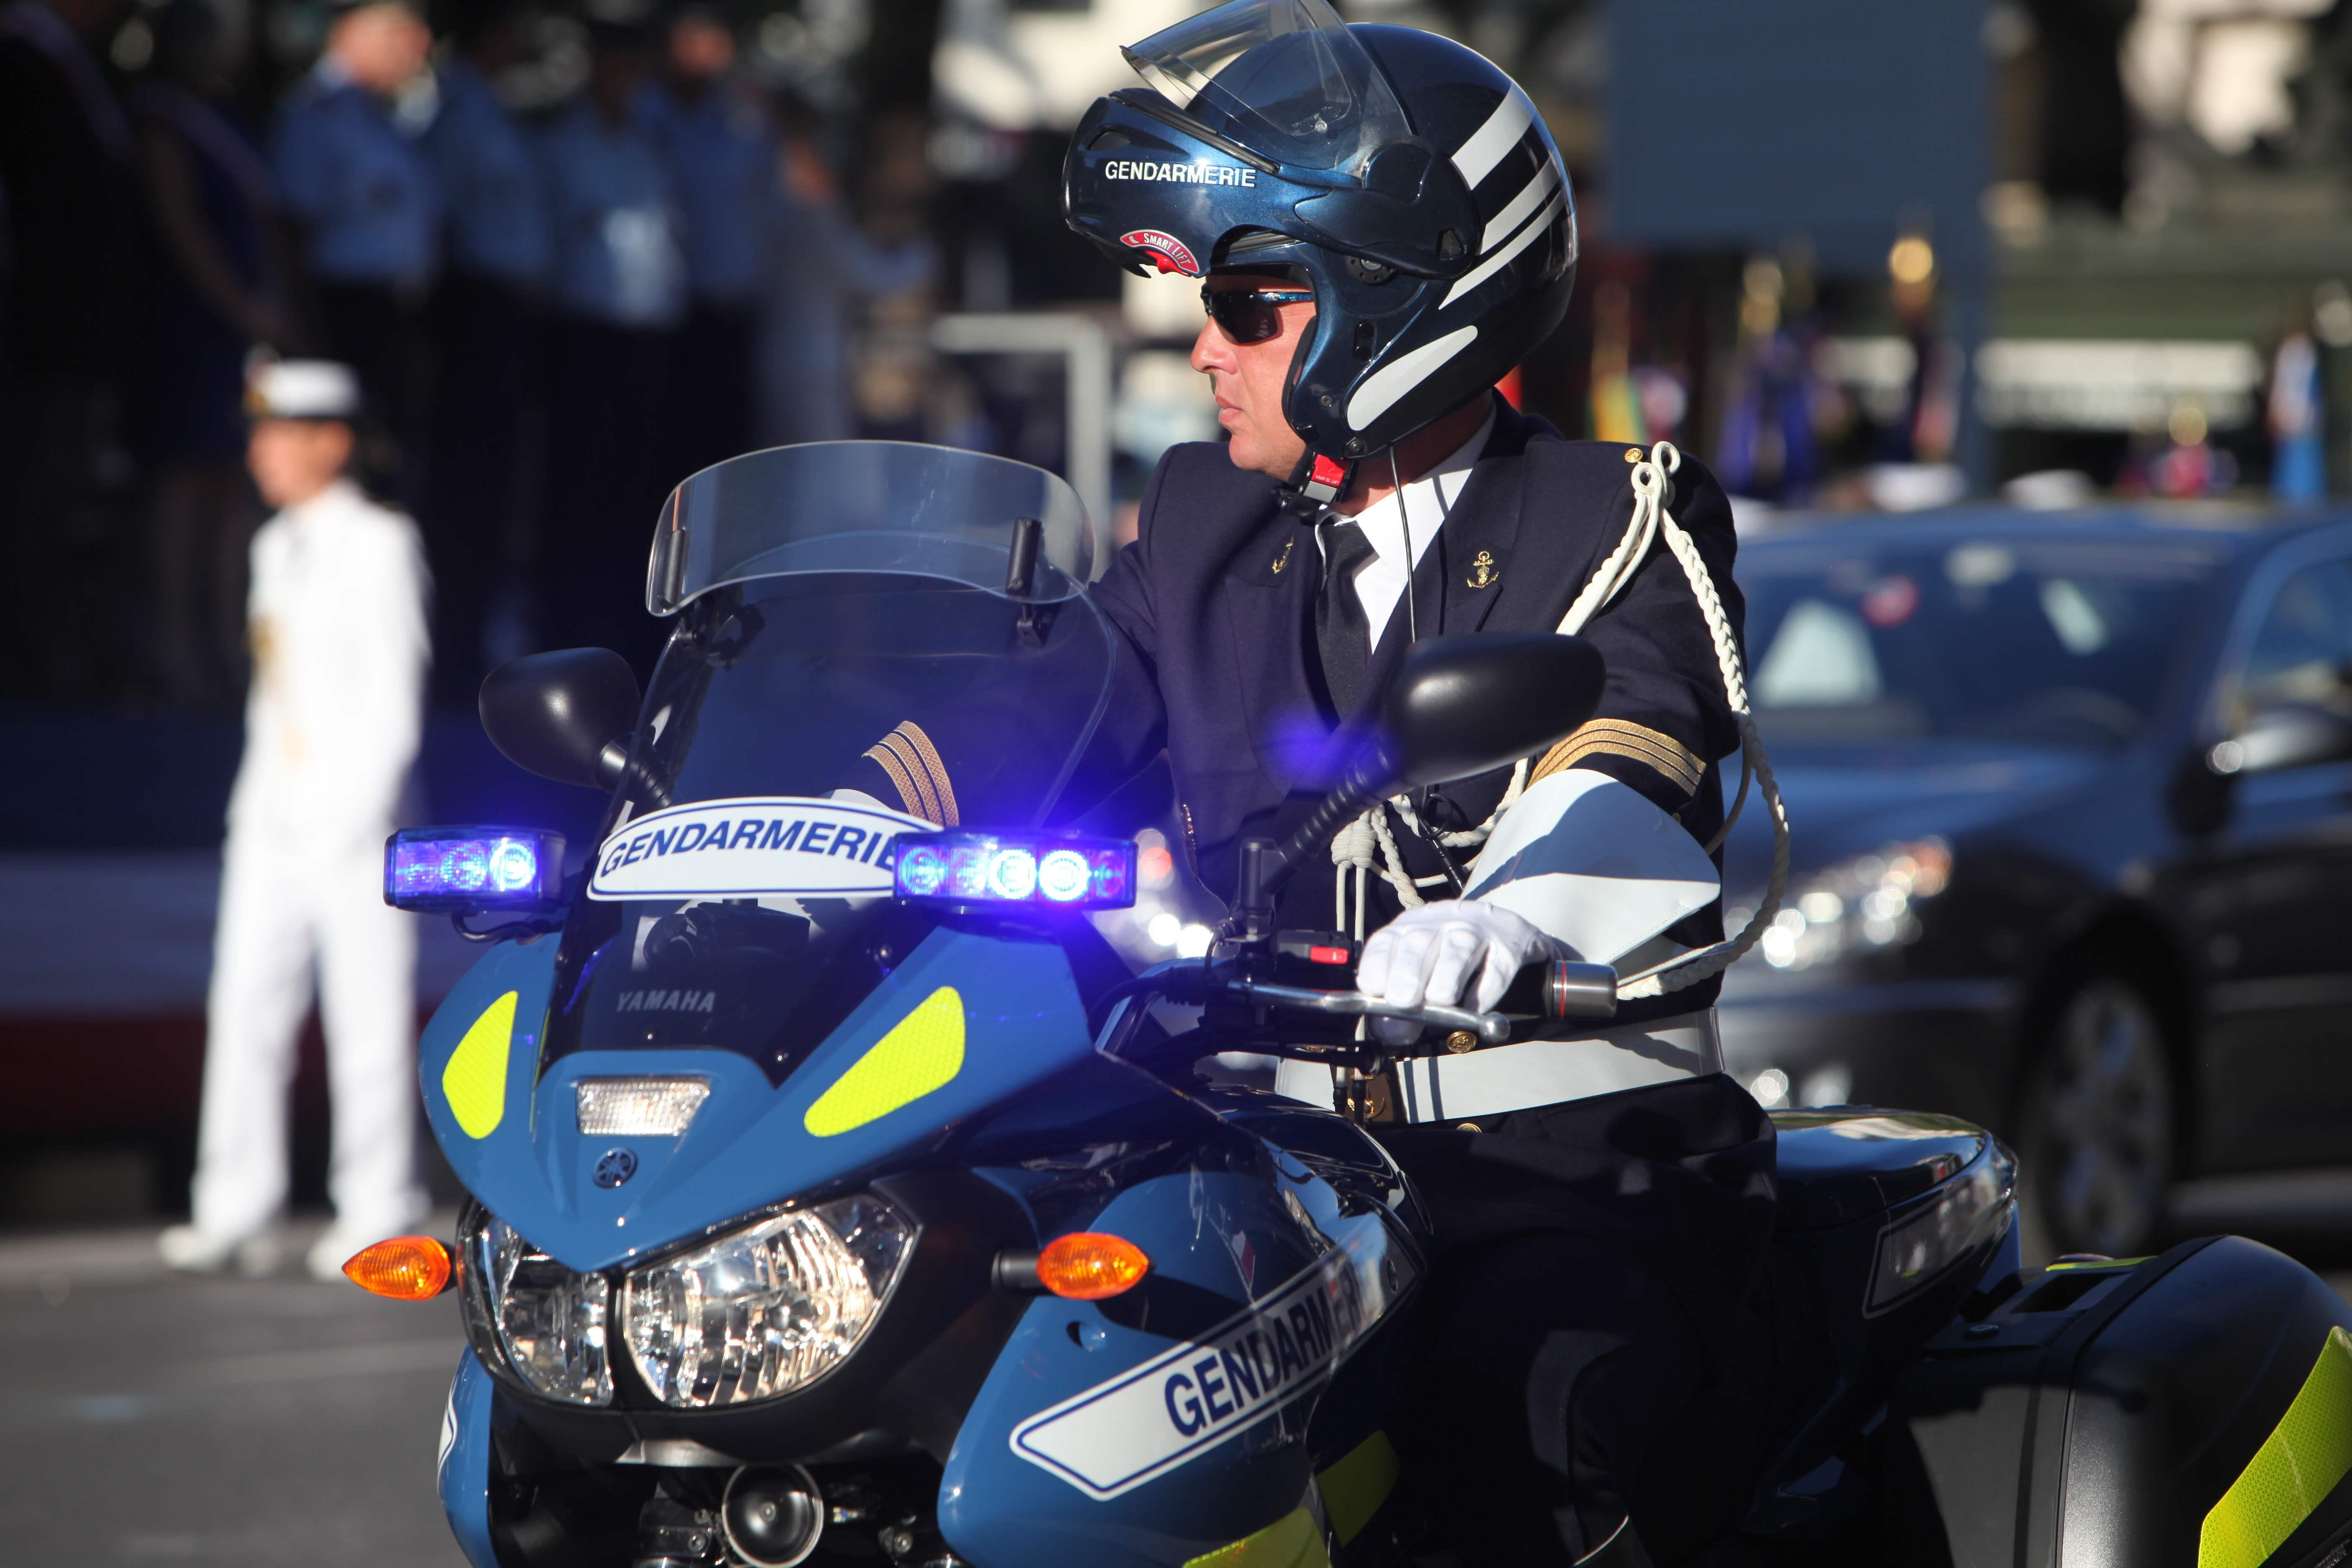 France_police_and_gendarmerie_1